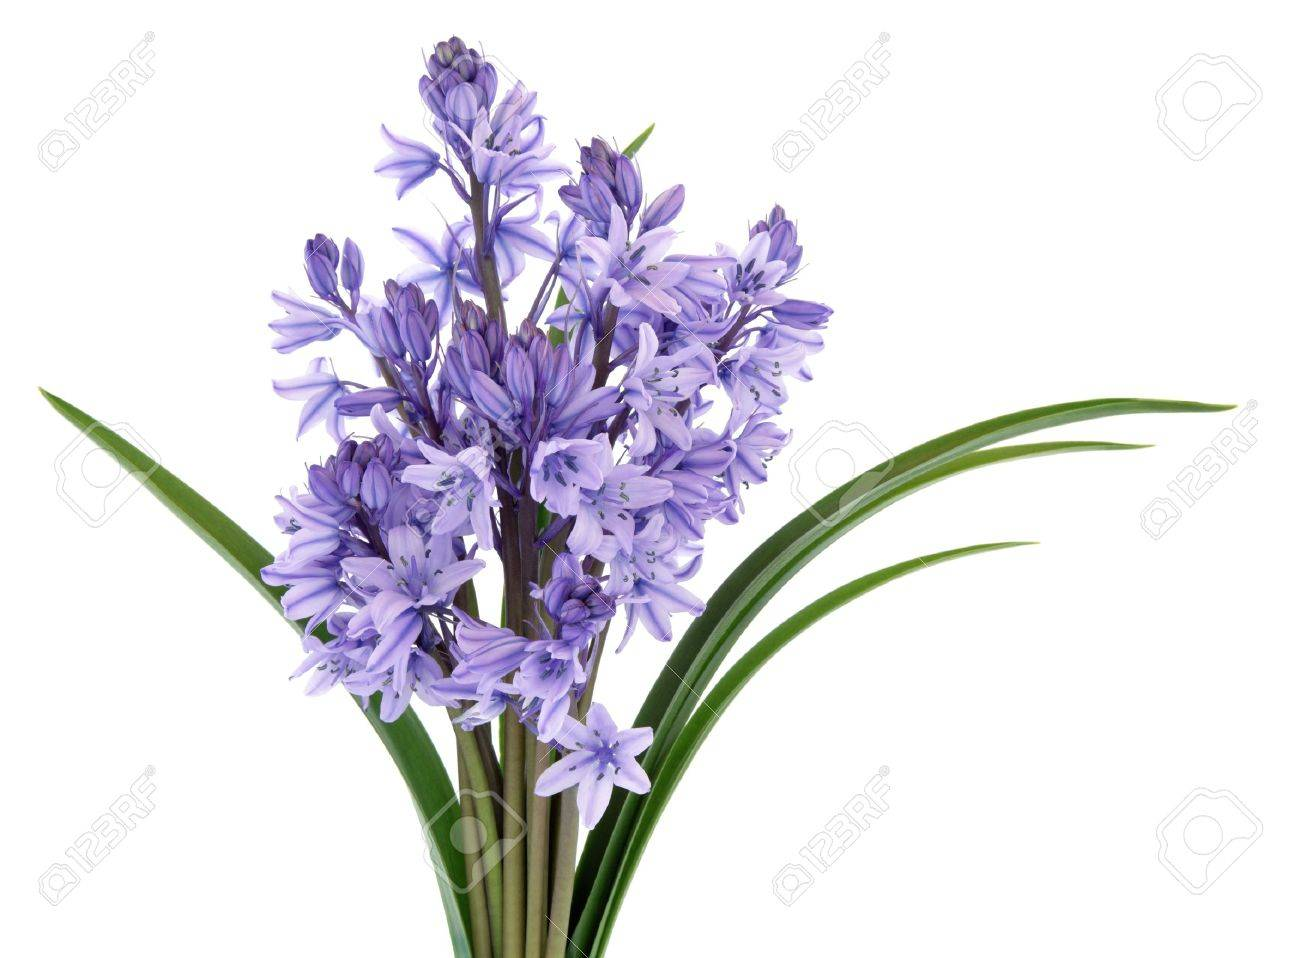 Bluebell wild flowers isolated over white background stock photo bluebell wild flowers isolated over white background stock photo 12420316 dhlflorist Image collections